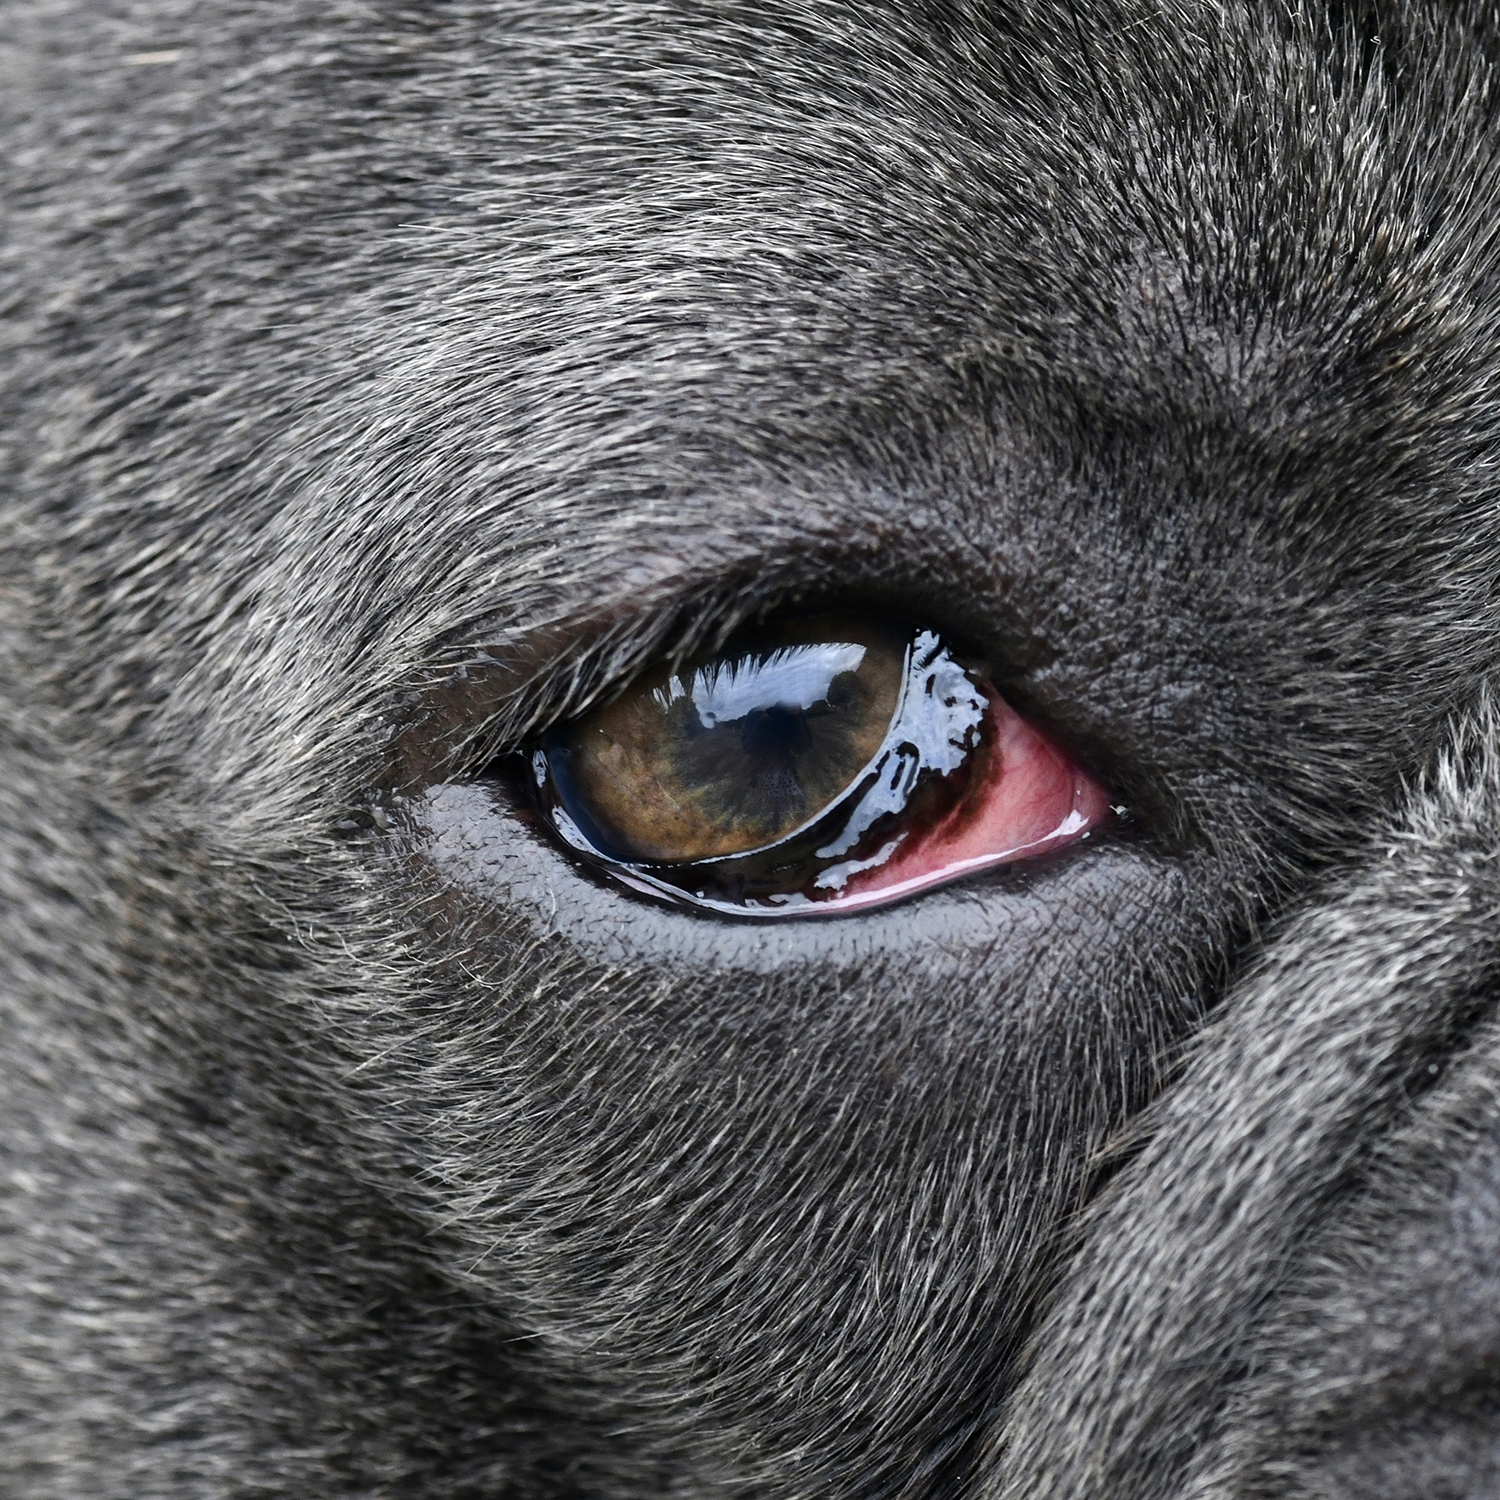 French Bulldog with conjunctival hyperaemia